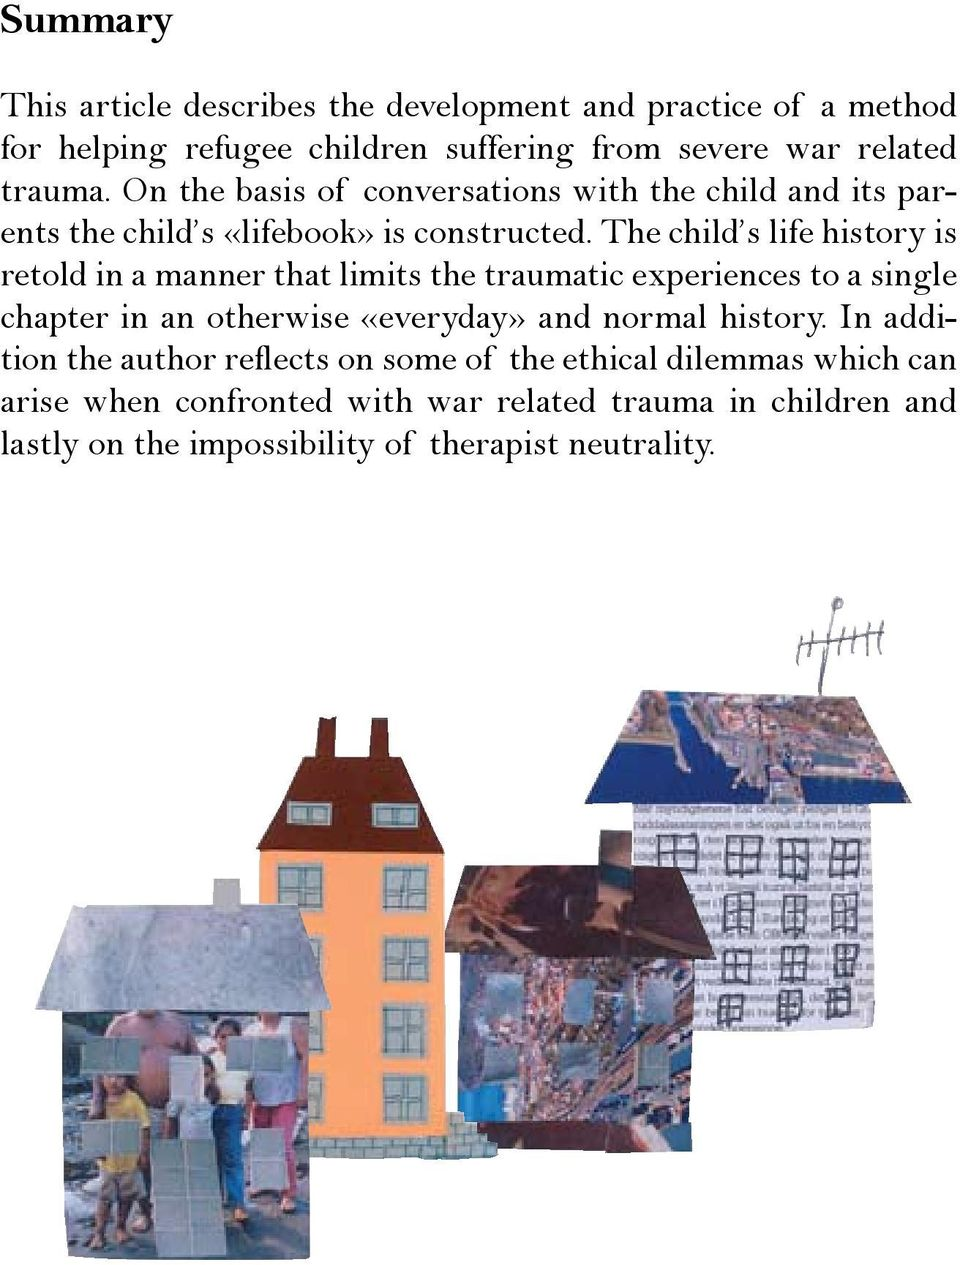 The child s life history is retold in a manner that limits the traumatic experiences to a single chapter in an otherwise «everyday» and normal